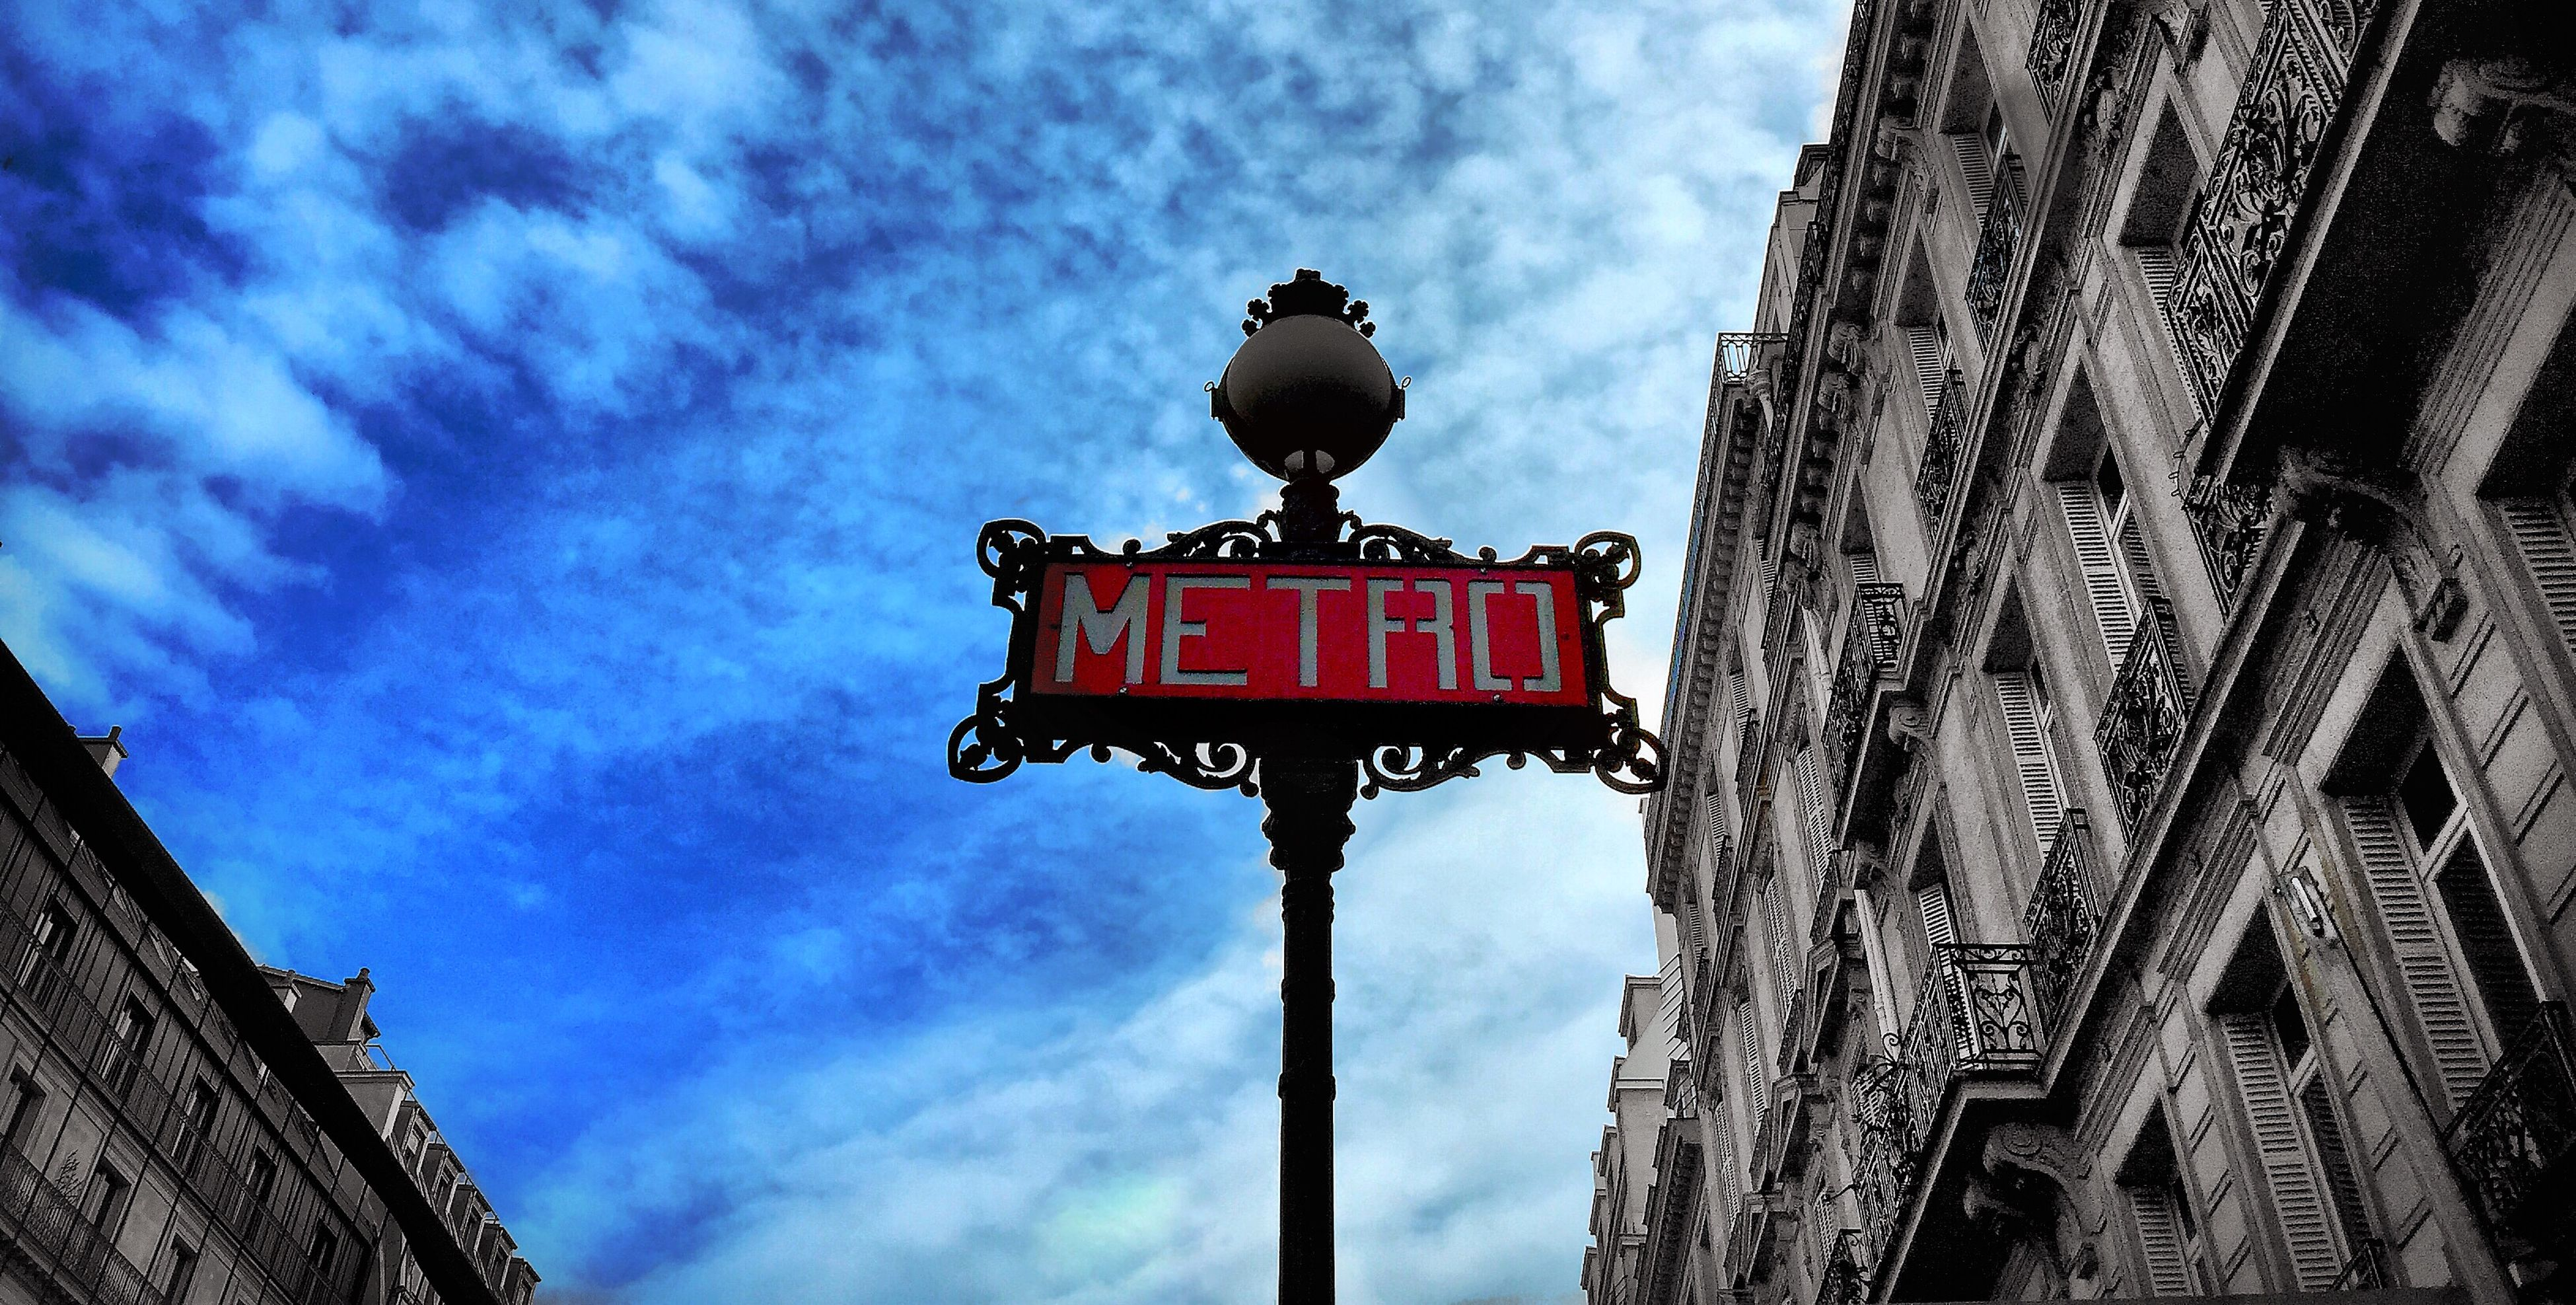 low angle view, architecture, building exterior, built structure, sky, cloud - sky, cloud, cloudy, red, lighting equipment, street light, city, outdoors, no people, high section, day, building, pole, blue, guidance